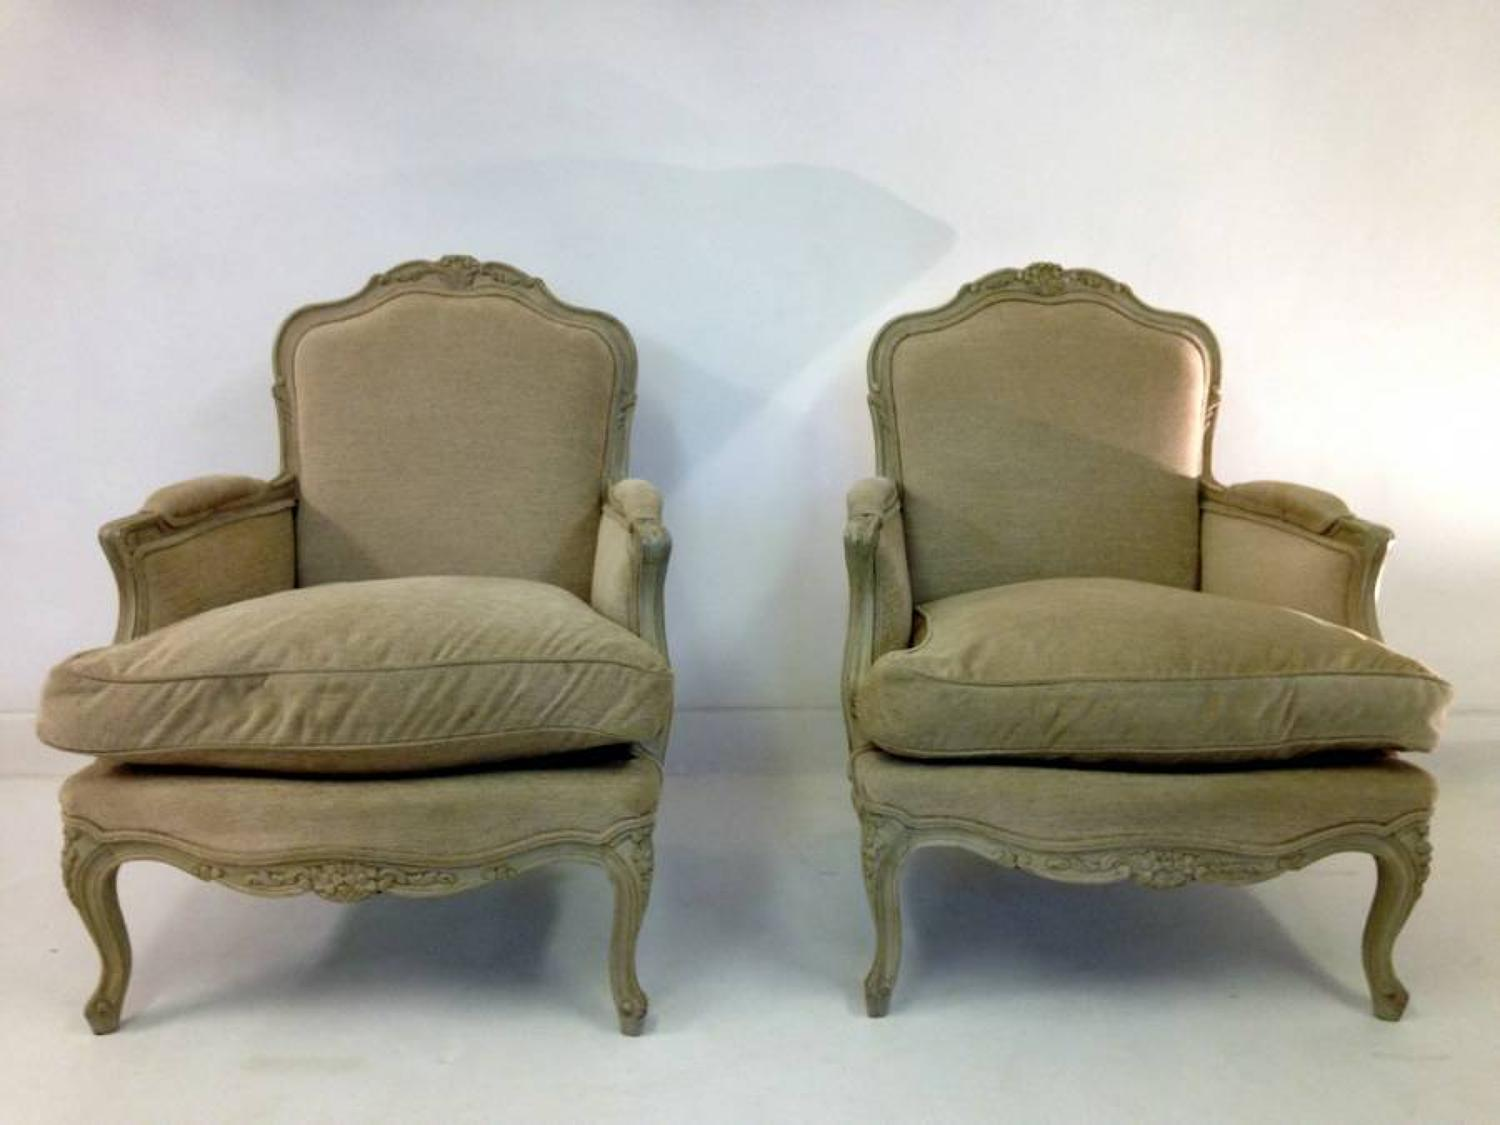 A pair of French bergere armchairs